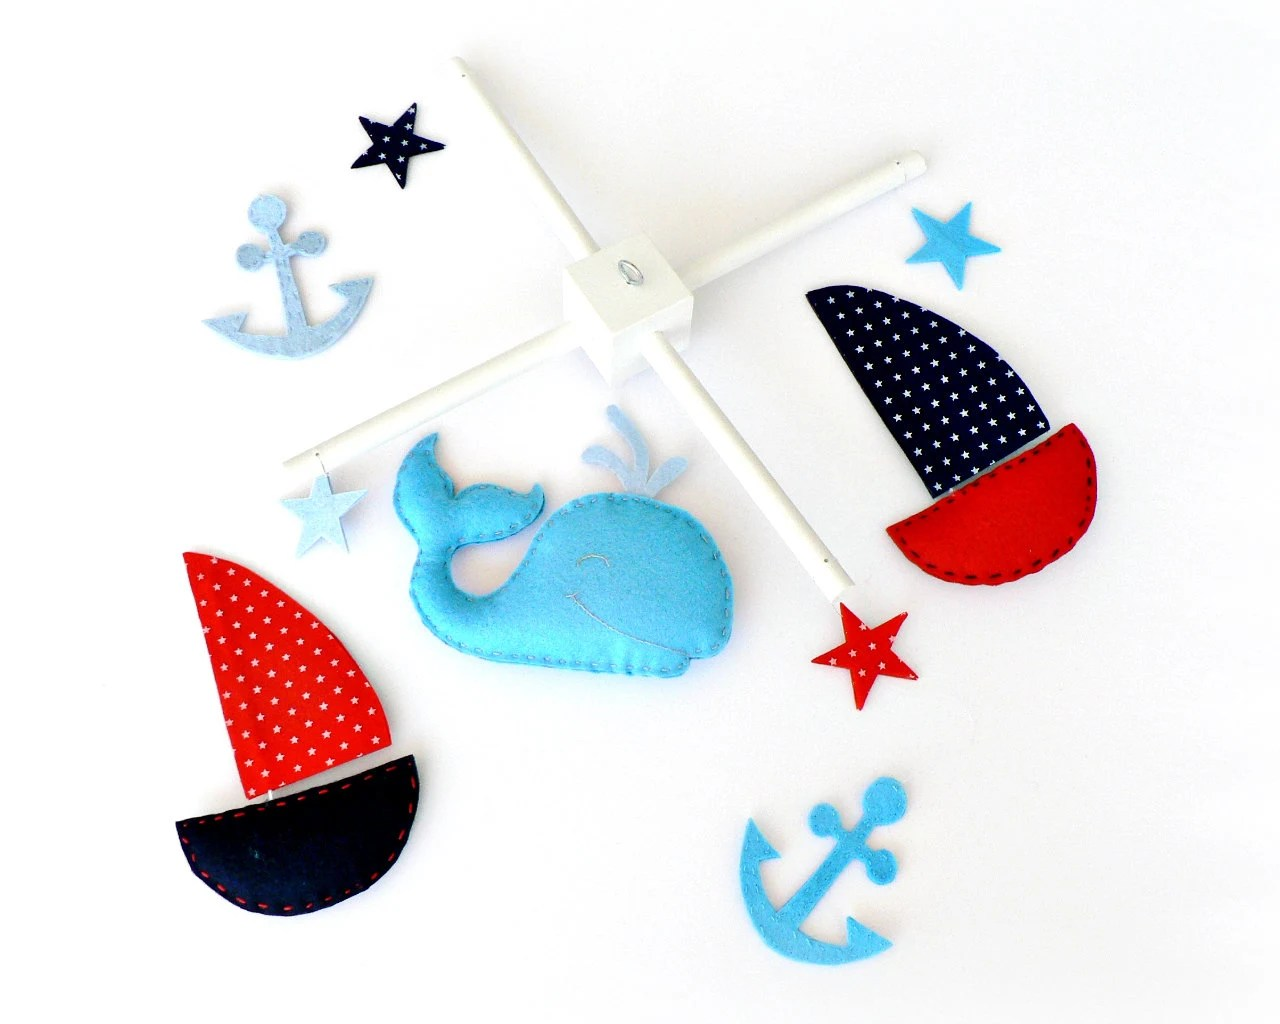 Nautical mobile - Felt whale, sail boats, stars and anchors - You pick your colors - navy blue, red, water blue, light blue - Nursery decor - LullabyMobiles